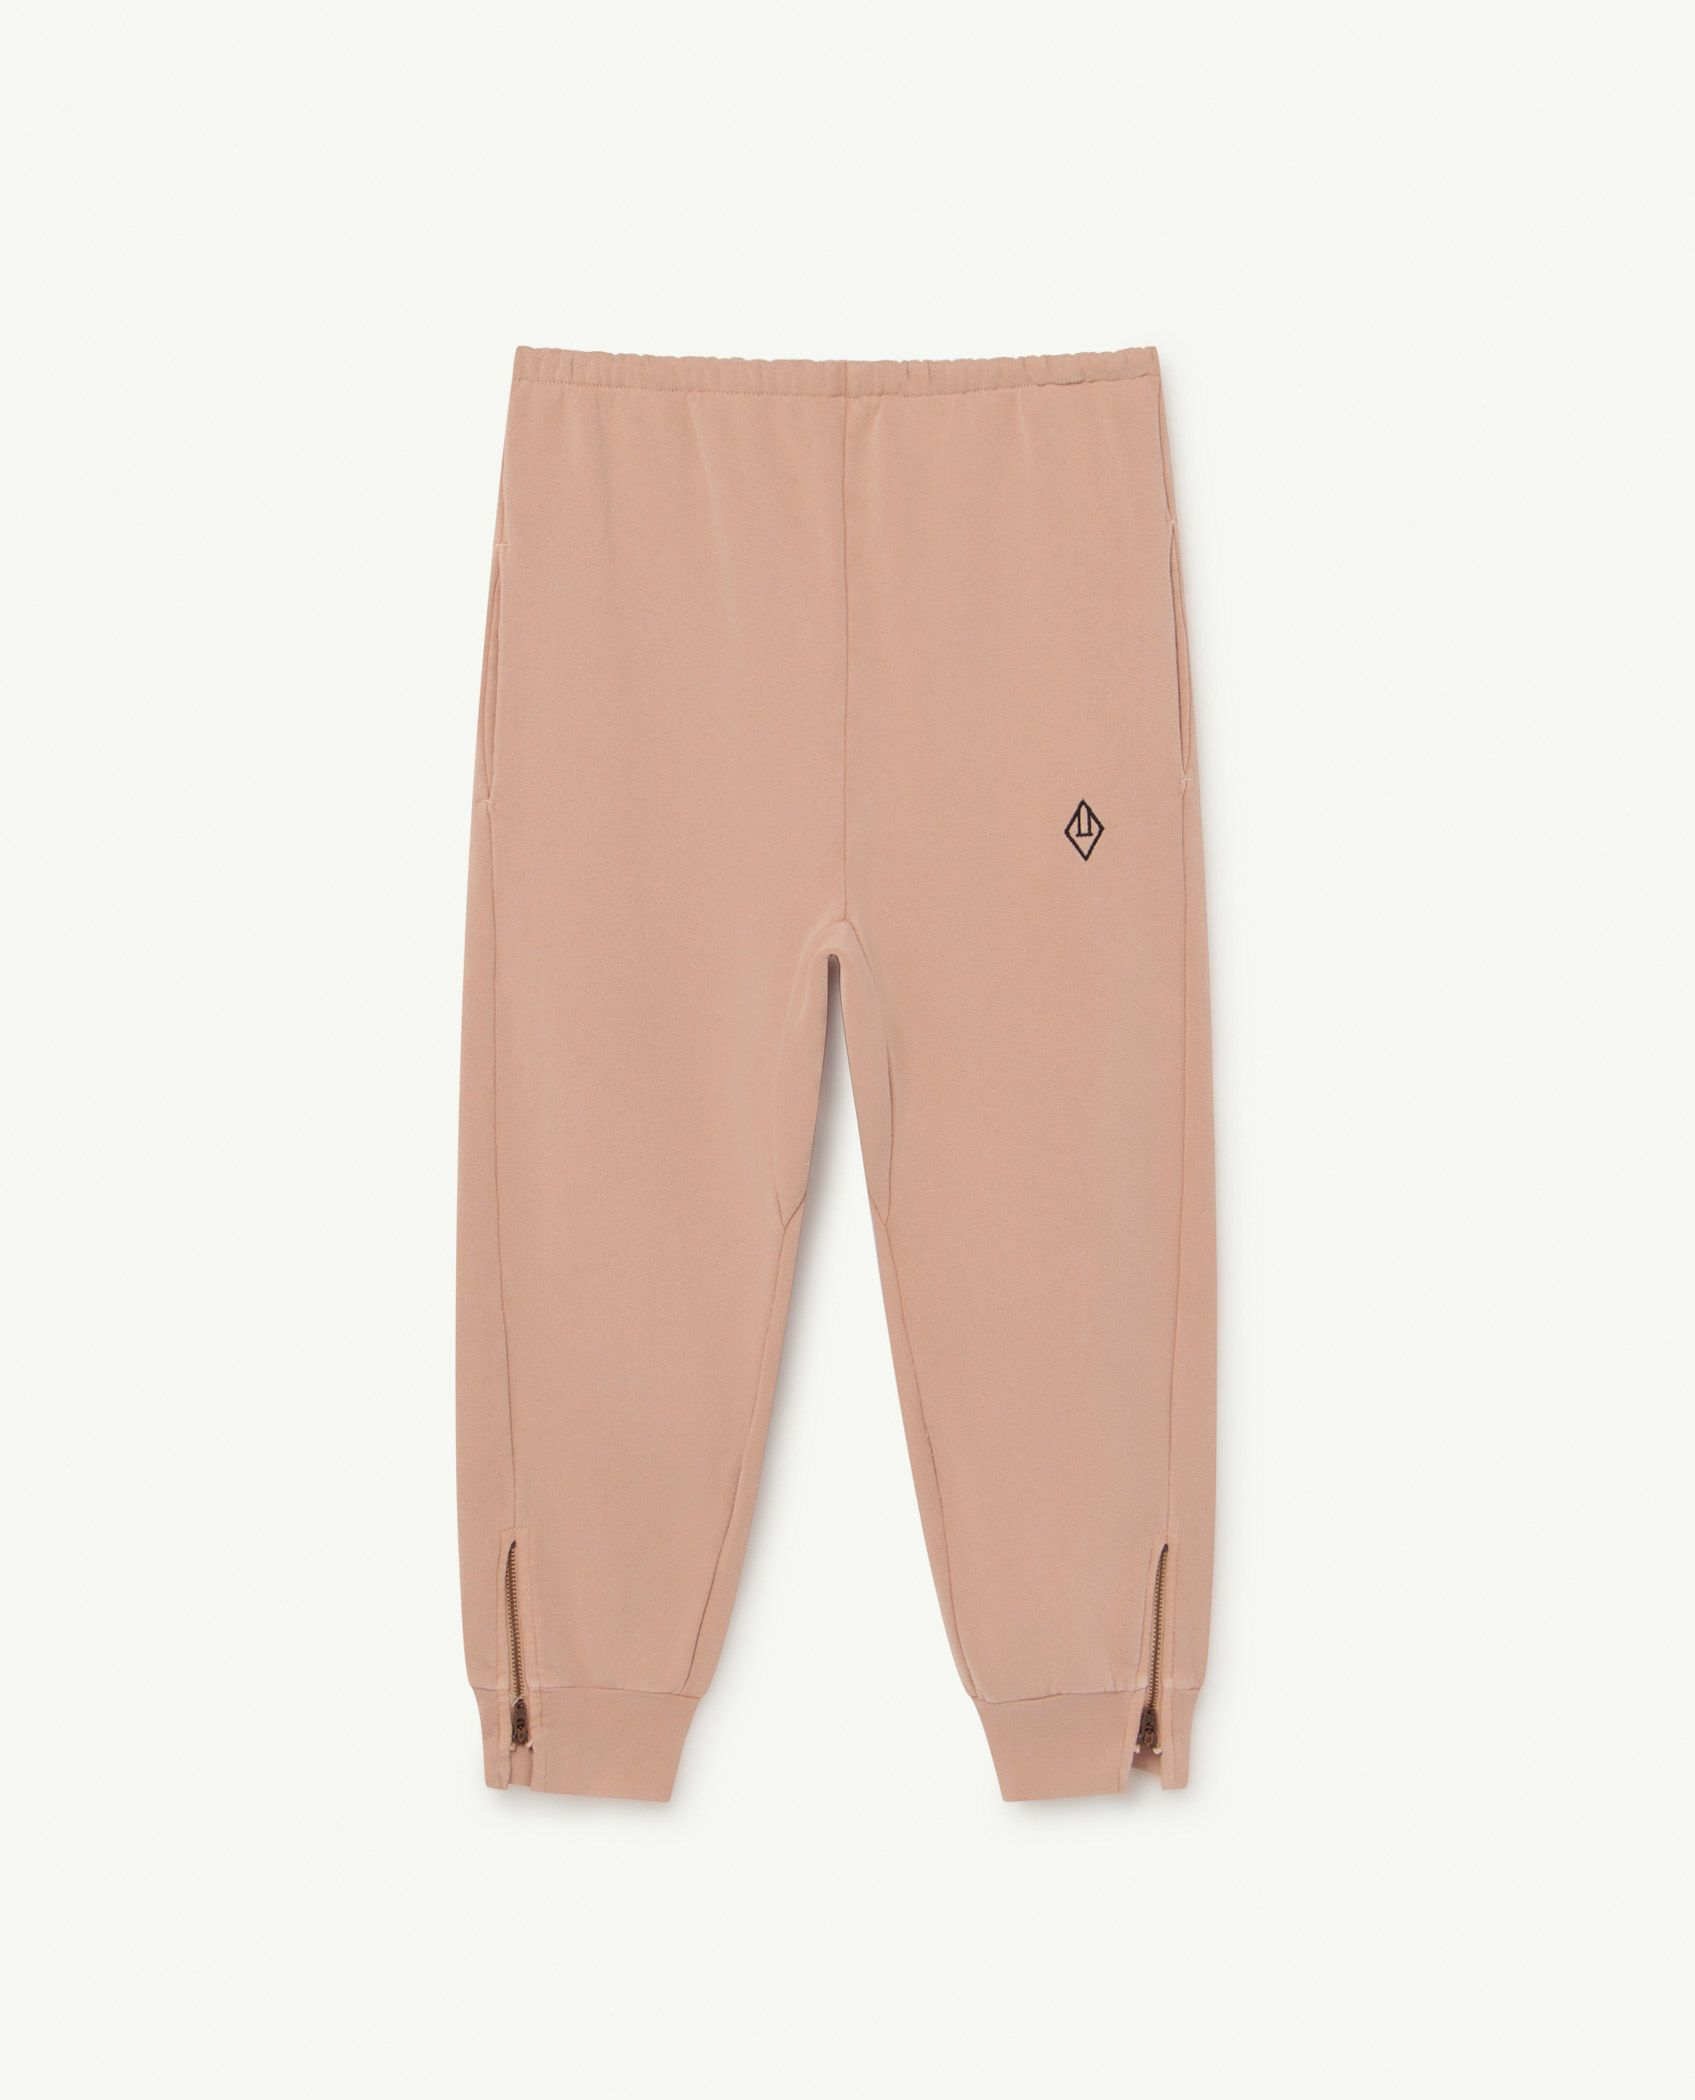 Soft Pink Logo Panther Trousers img-1